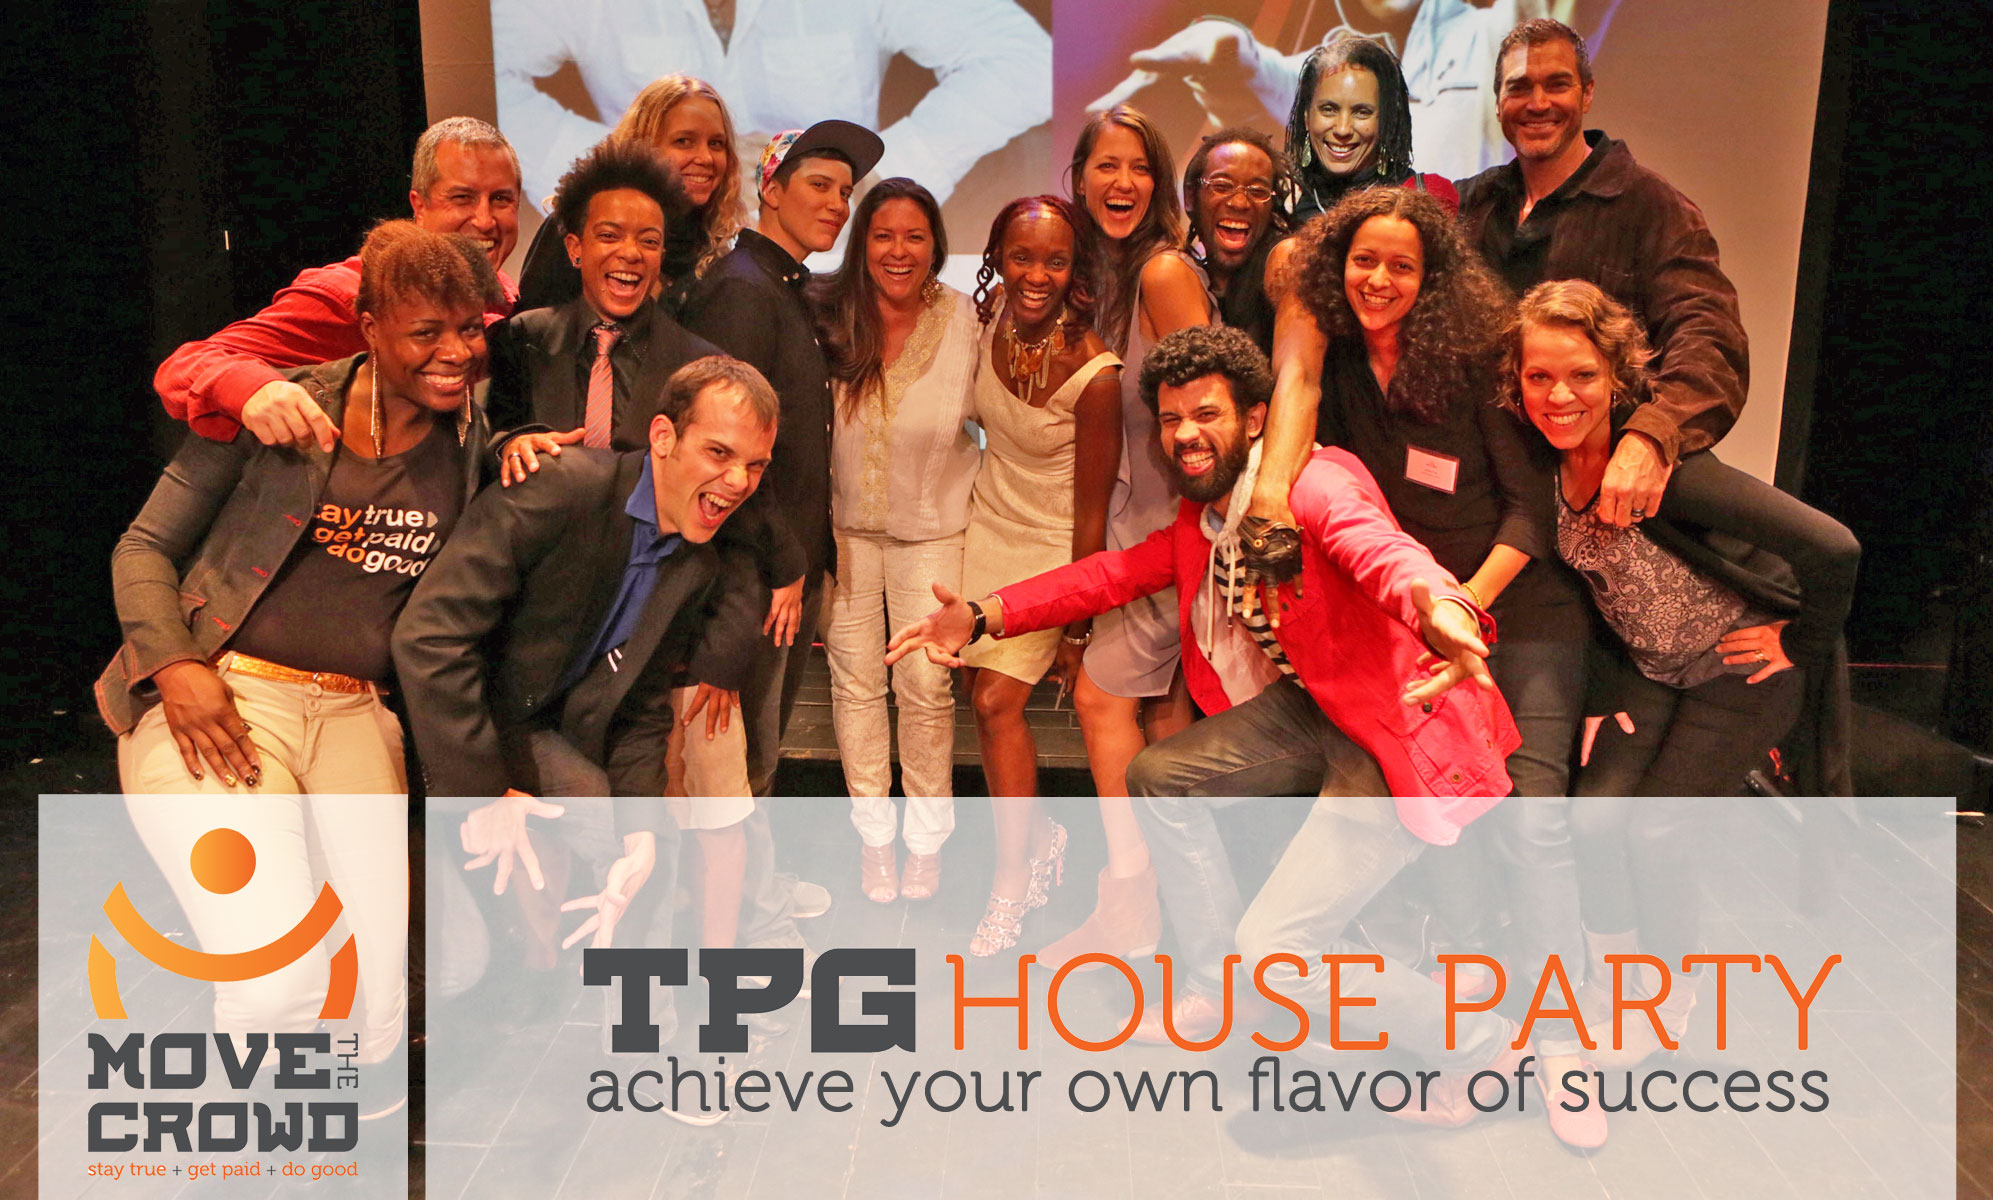 House Party Crowd Getting Their True+Paid+Good On!